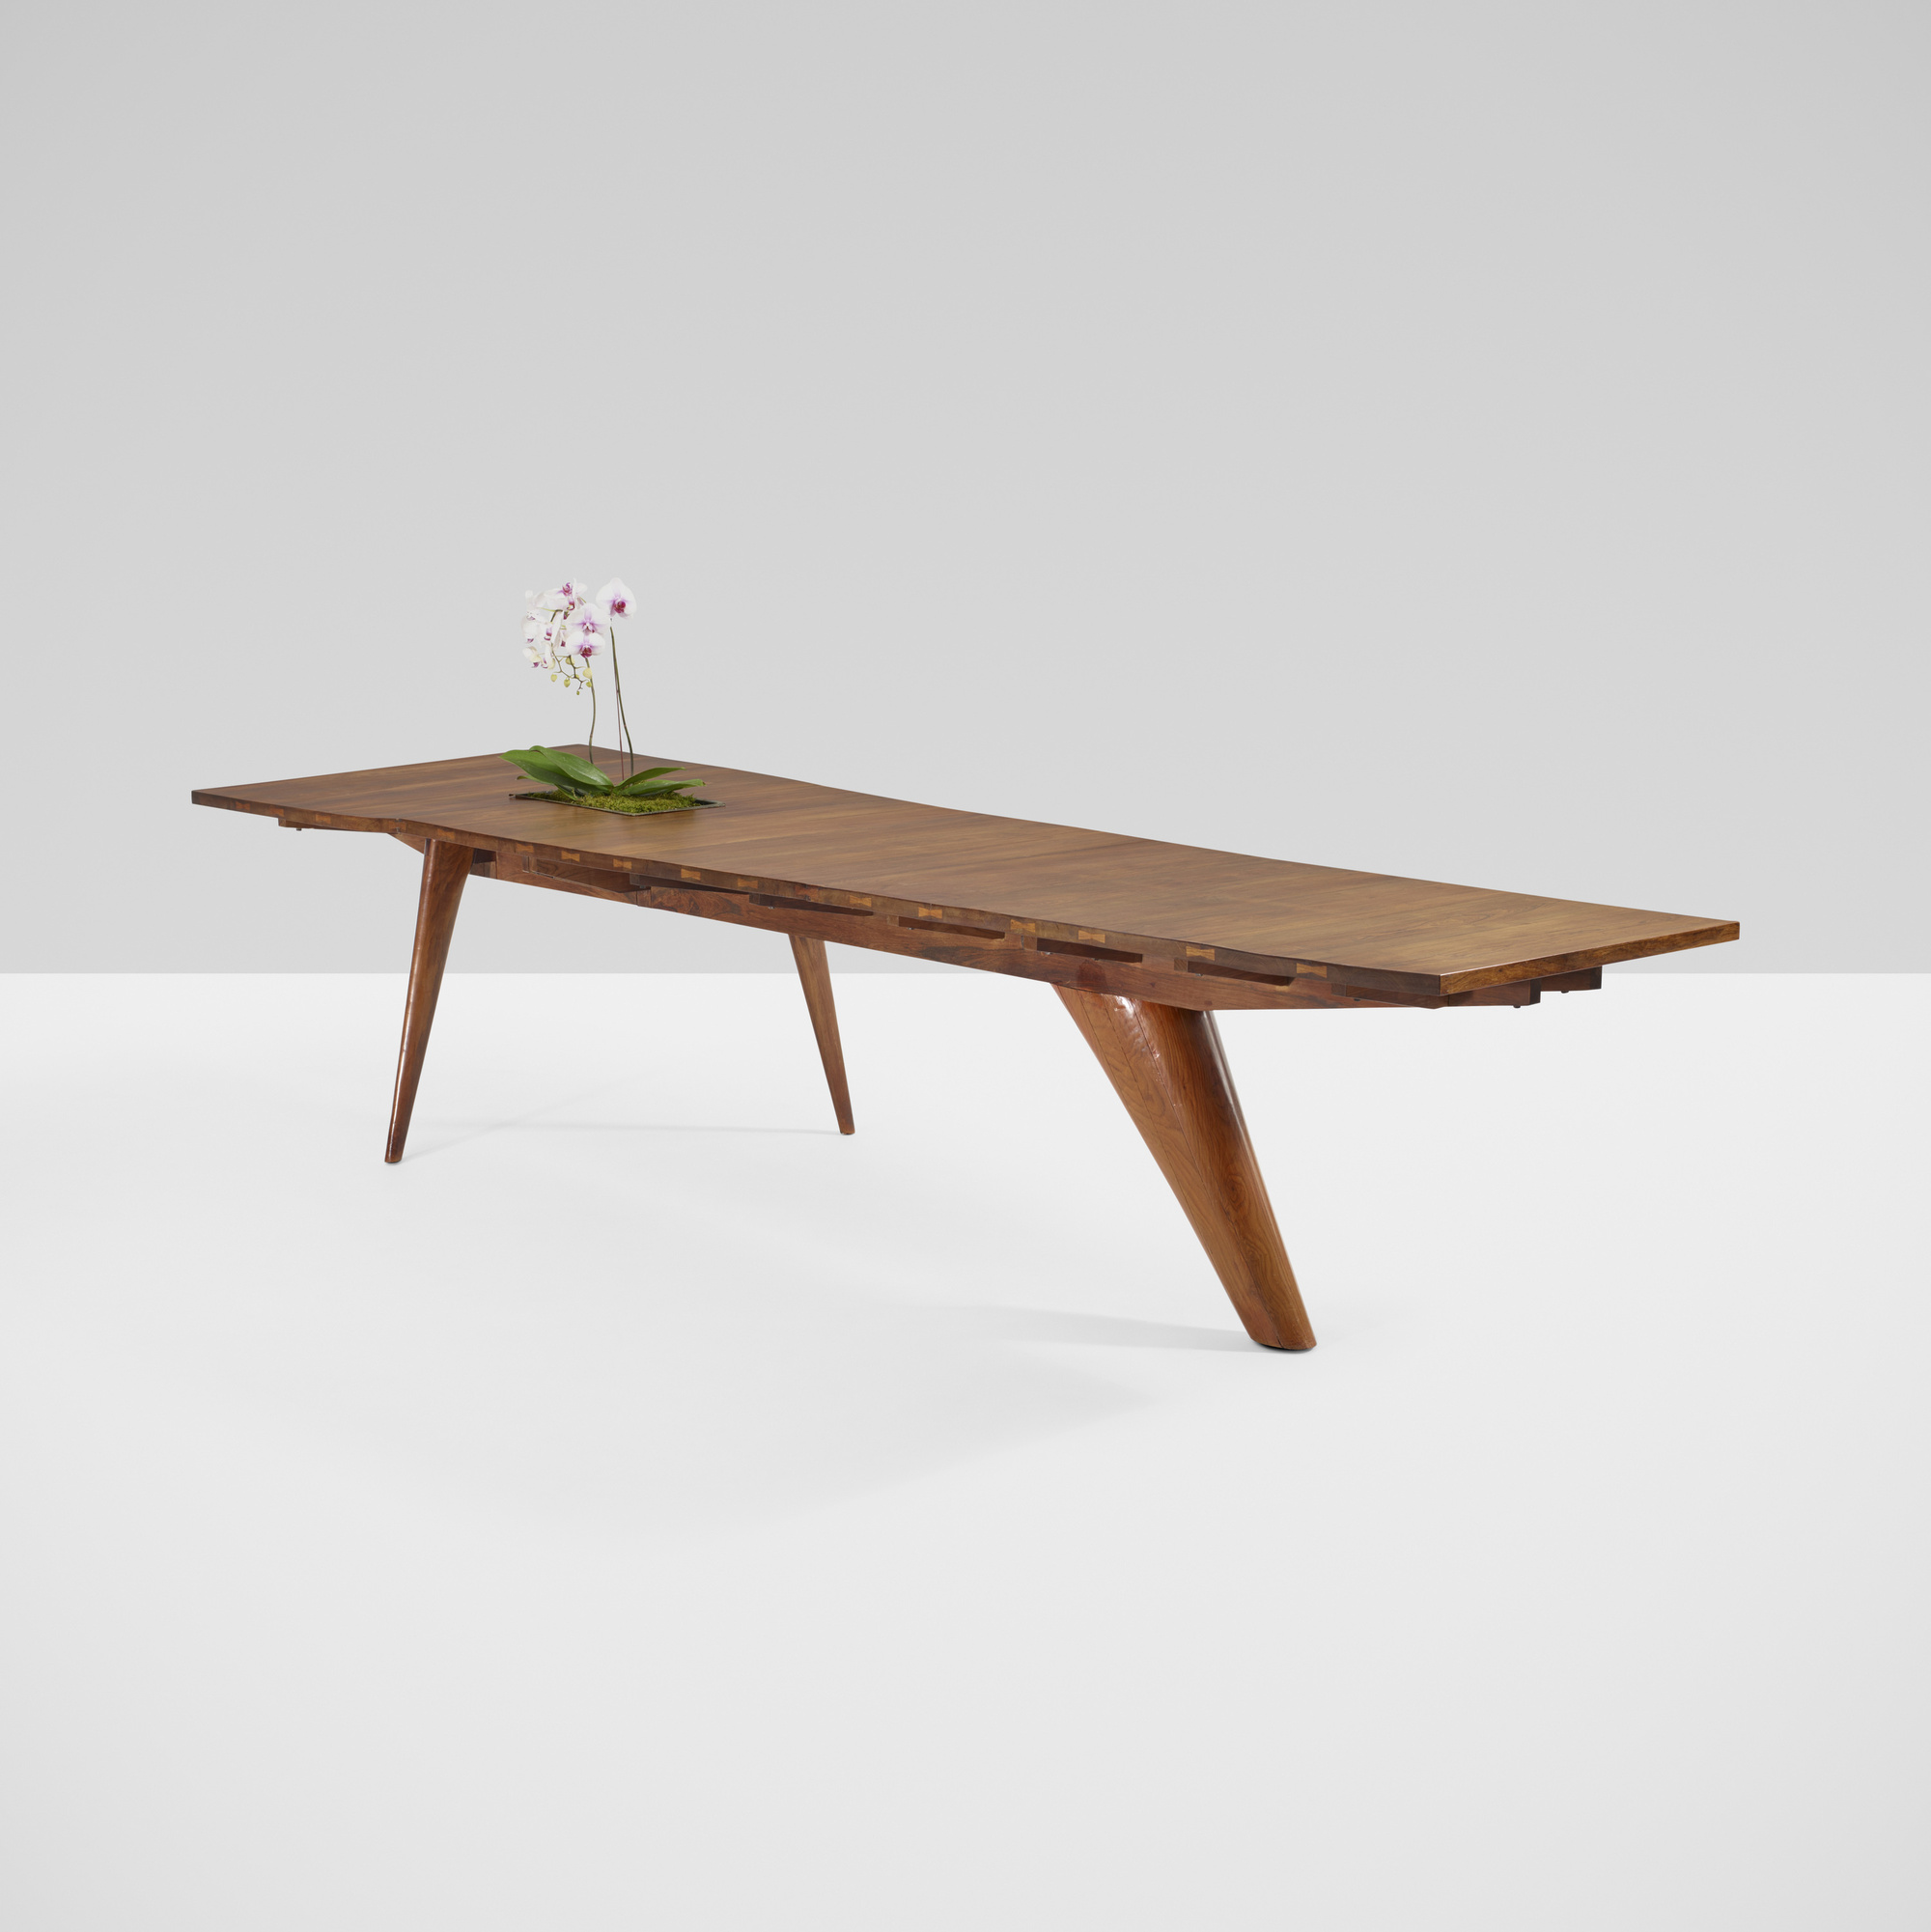 131 After Isamu Noguchi dining table Design 14 December 2017